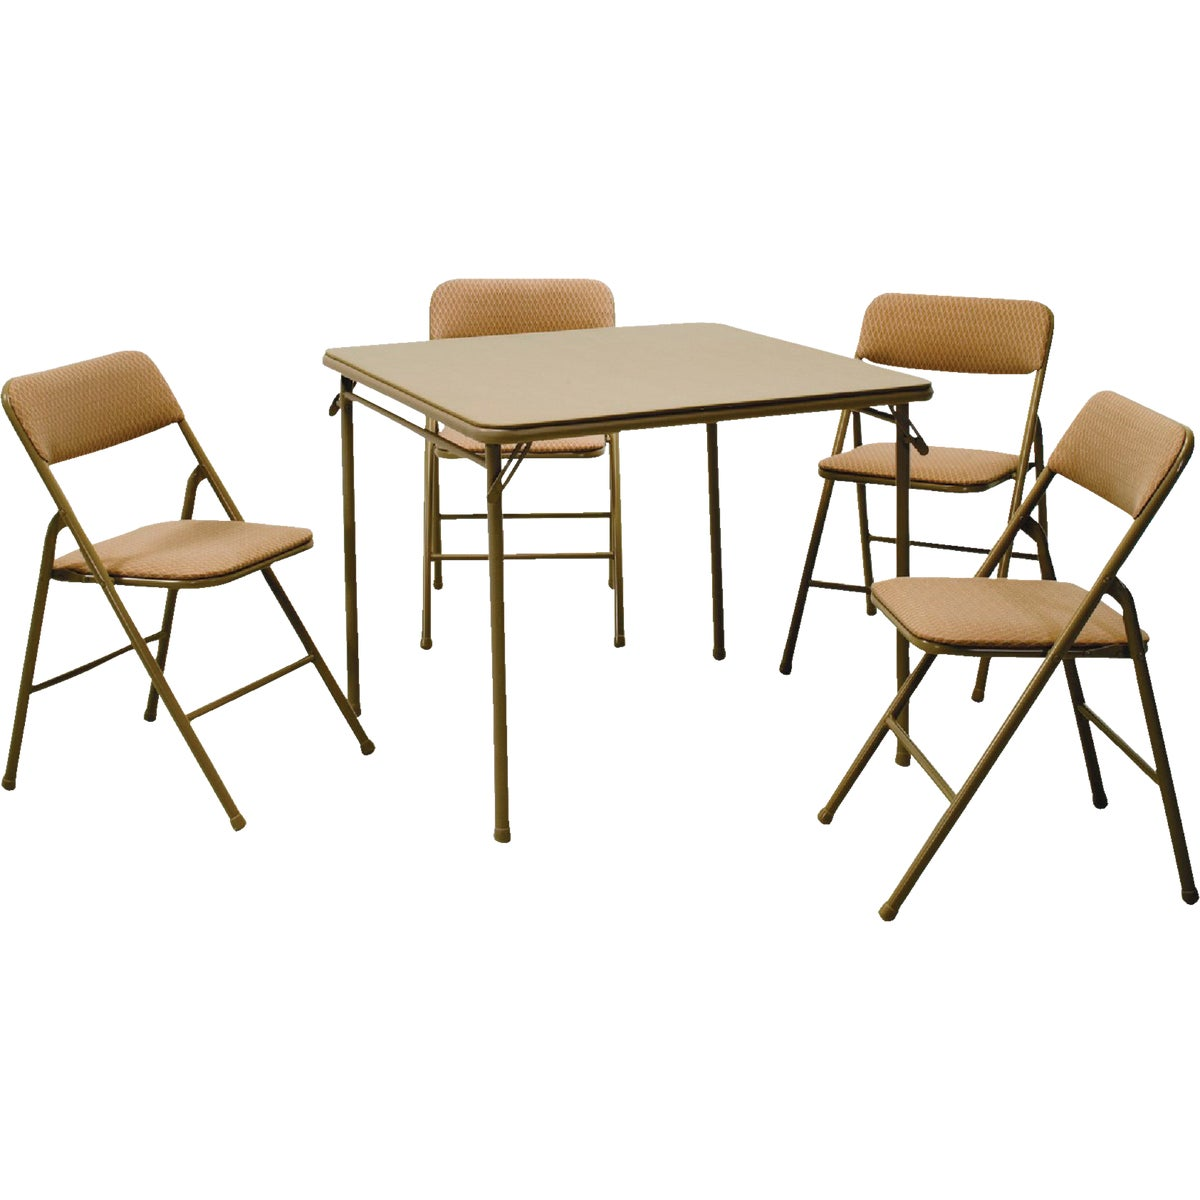 FOLDING TABLE/CHAIR SET